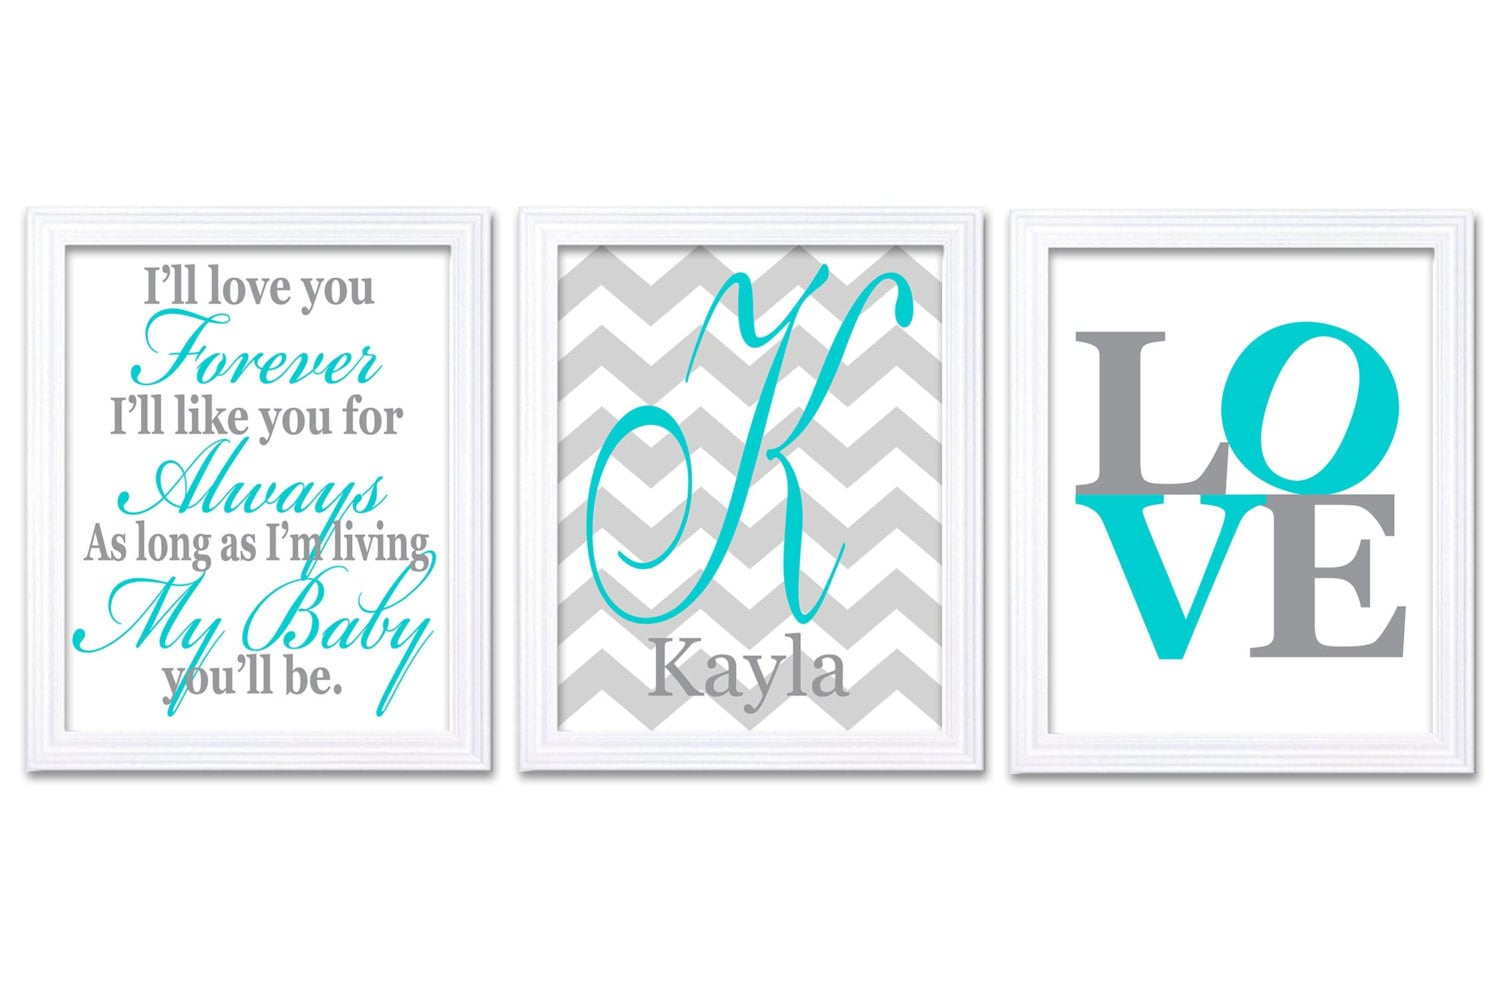 Letter Personalized Name Love Nursery Art Set of 3 Prints Blue Turquoise Grey Ill Love You Forever K